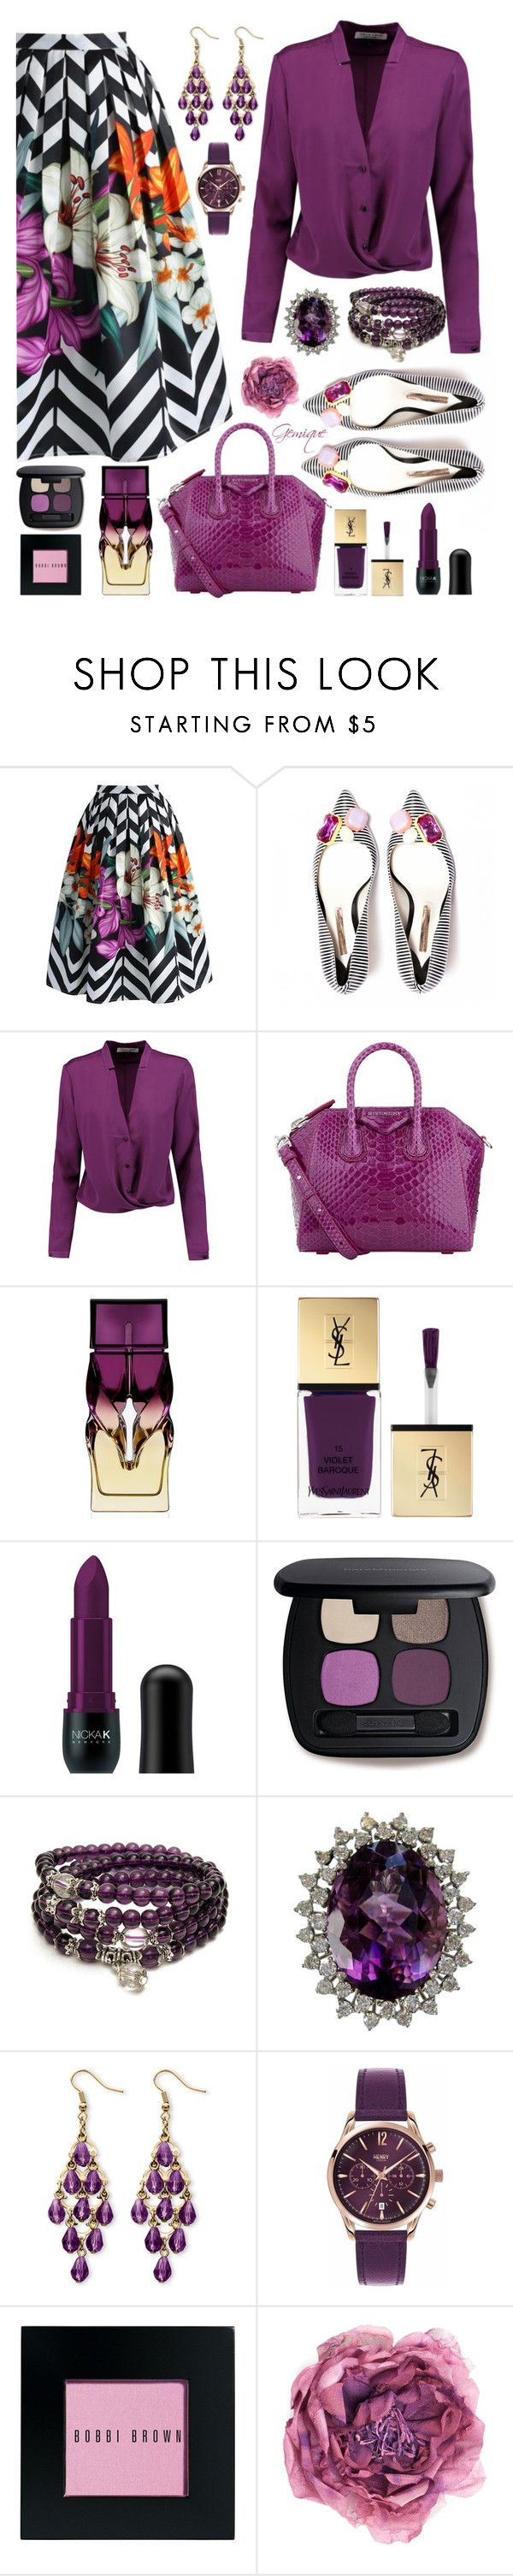 """Plum Yummy!"" by gemique ❤ liked on Polyvore featuring Chicwish, Halston Heritage, Givenchy, Christian Louboutin, Yves Saint Laurent, Nicka K, Bare Escentuals, Palm Beach Jewelry, Henry London and Bobbi Brown Cosmetics"